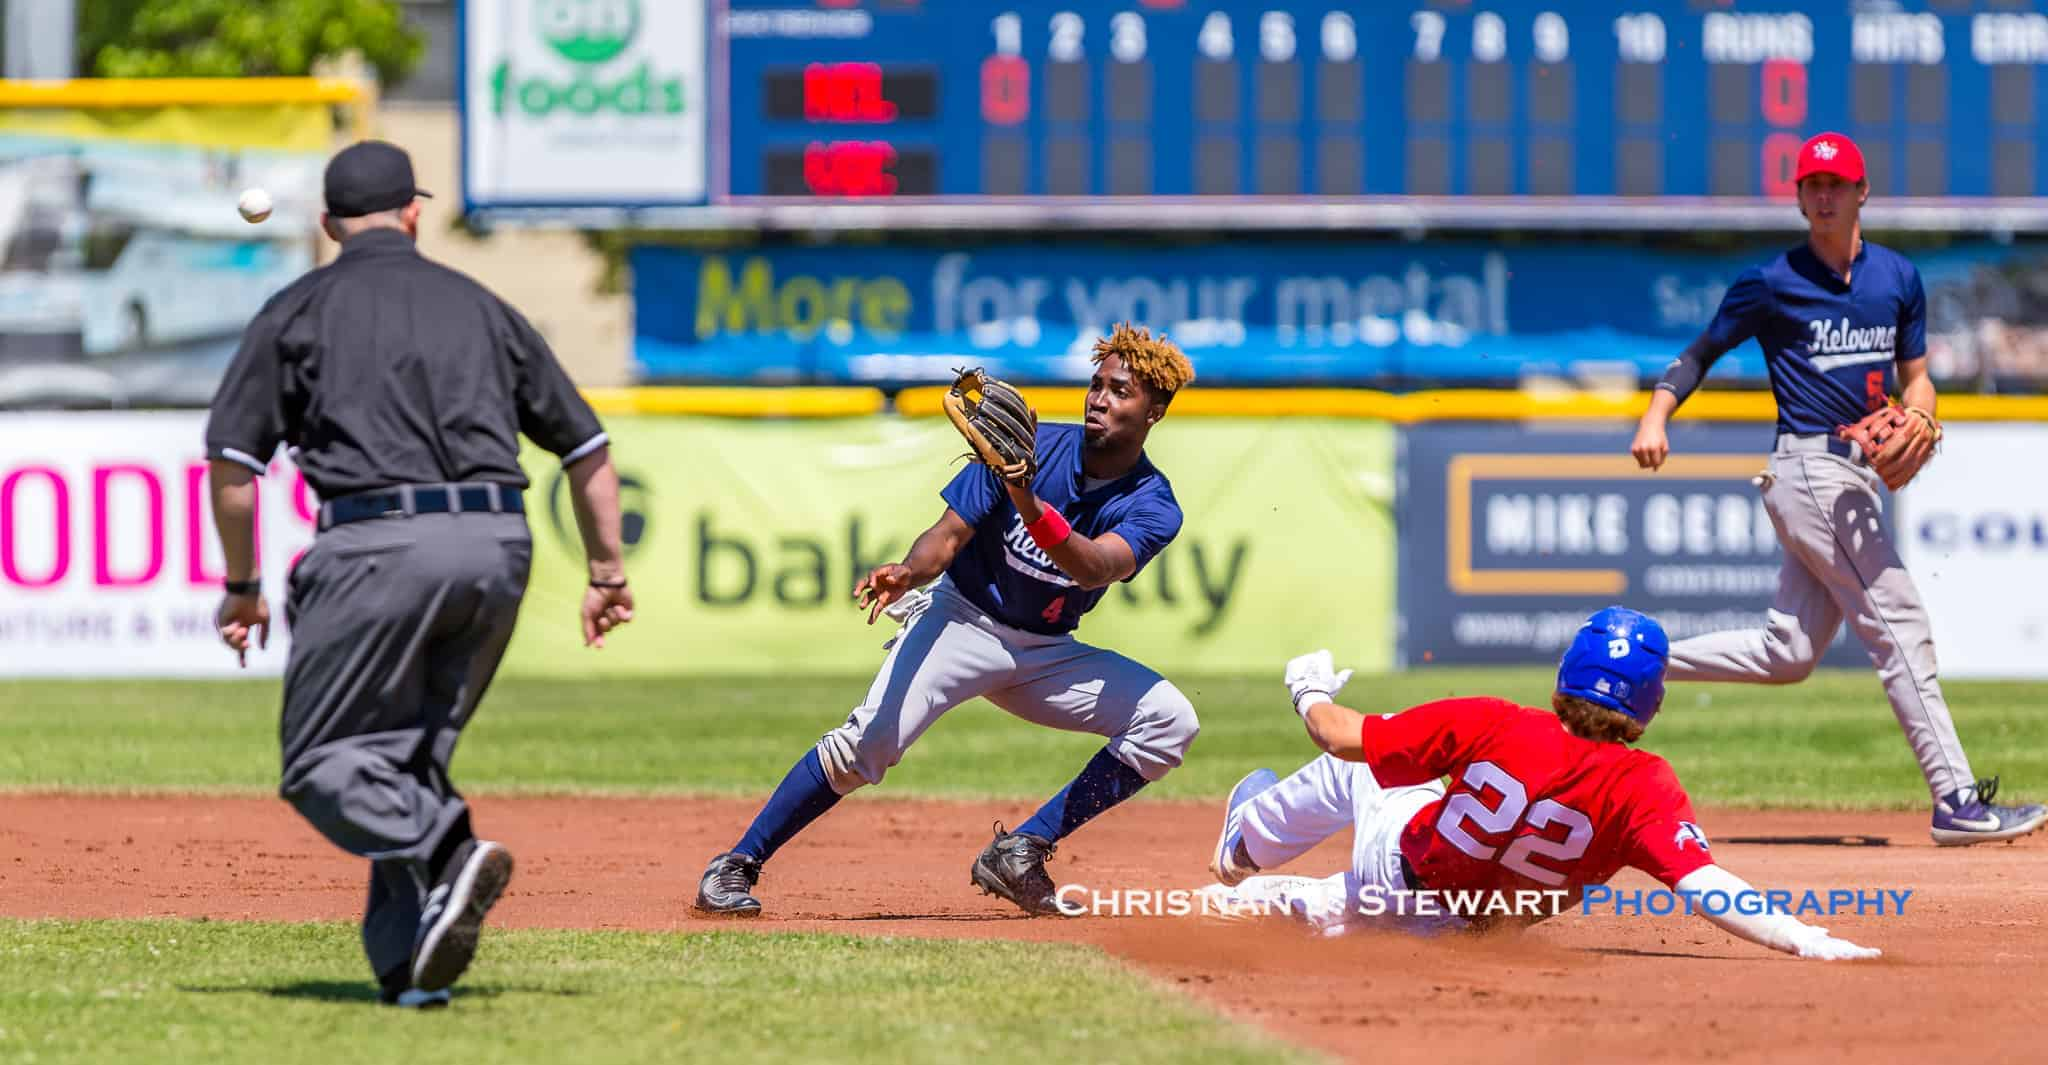 Victoria HarbourCats | 'Cats walk off Falcons in Canada Day